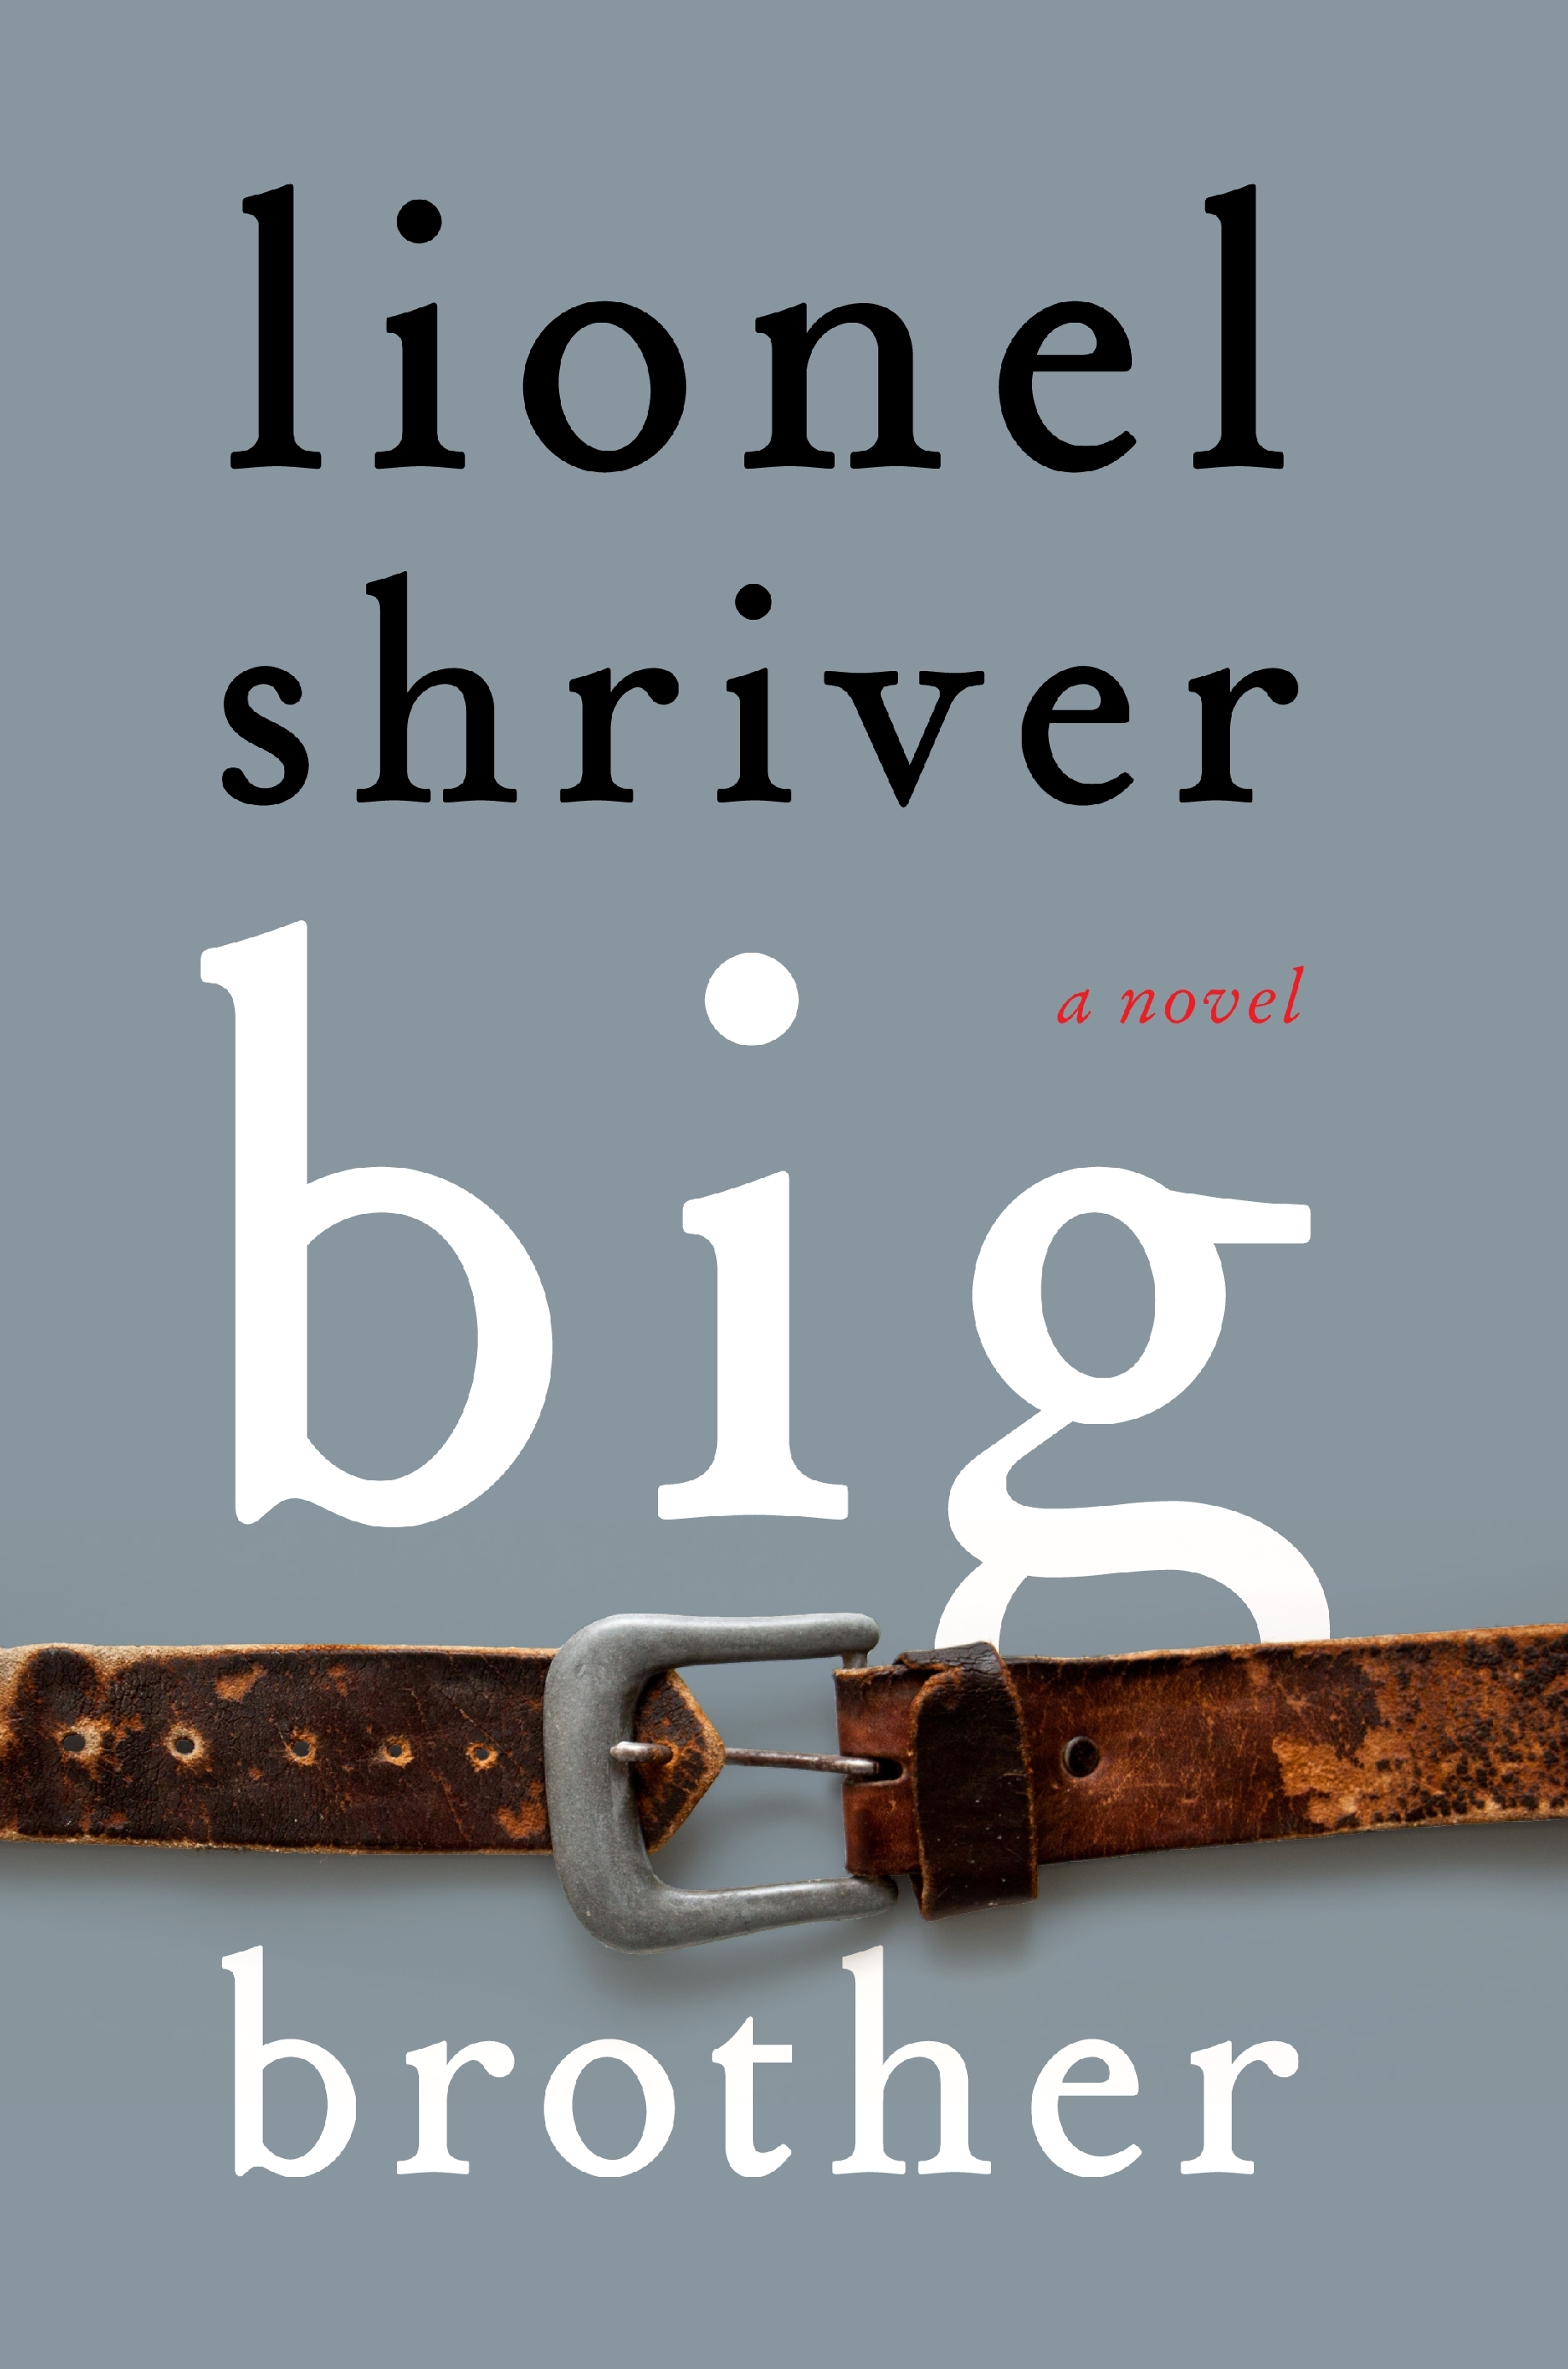 Book Launch: Big Brother by Lionel Shriver, with A.M. Homes